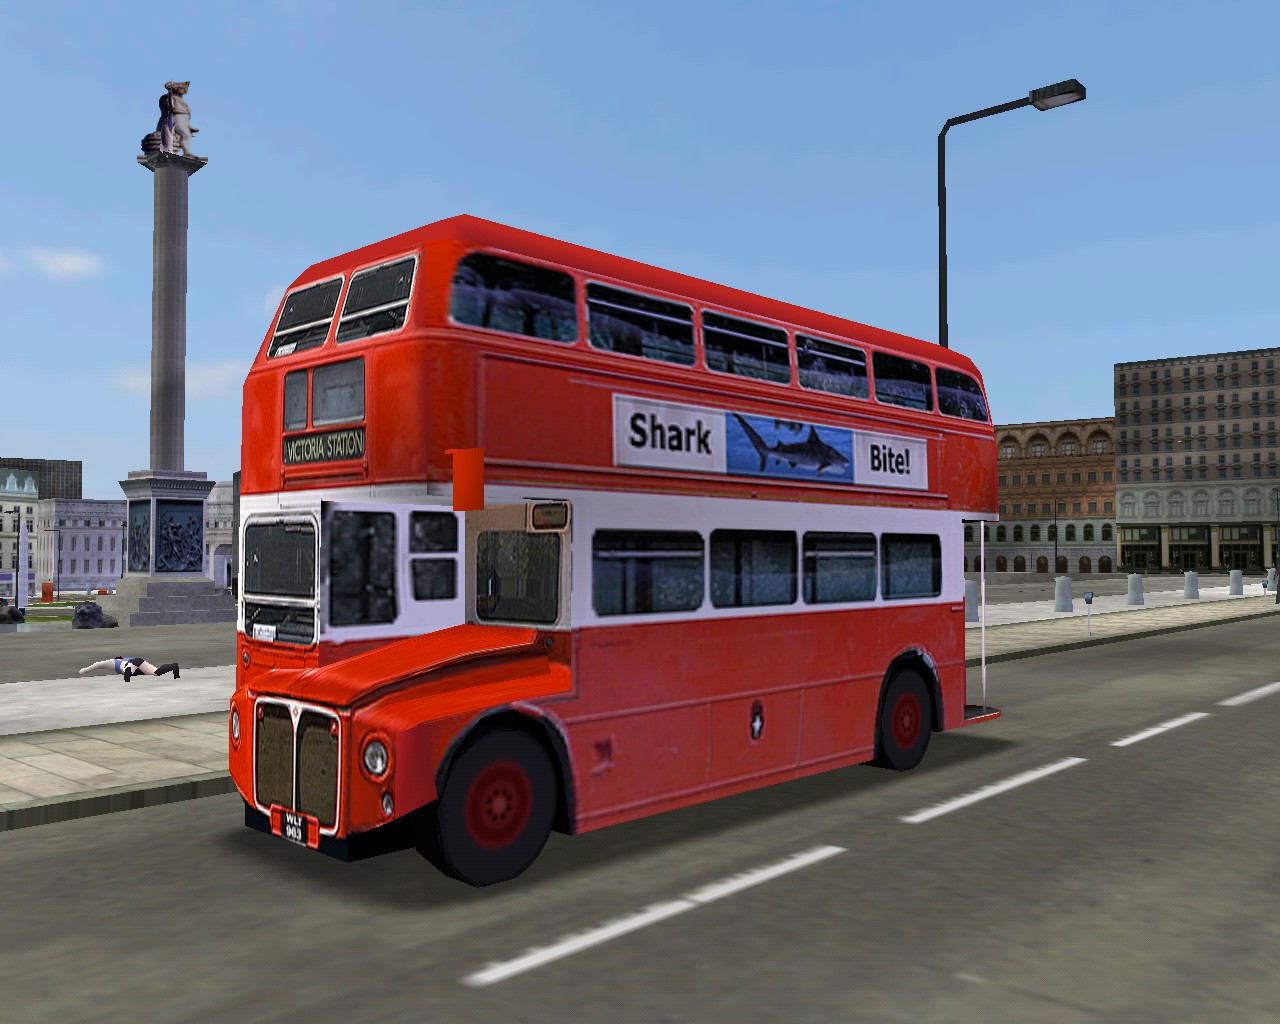 Double Decker Bus Midtown Madness 2 Wiki Fandom